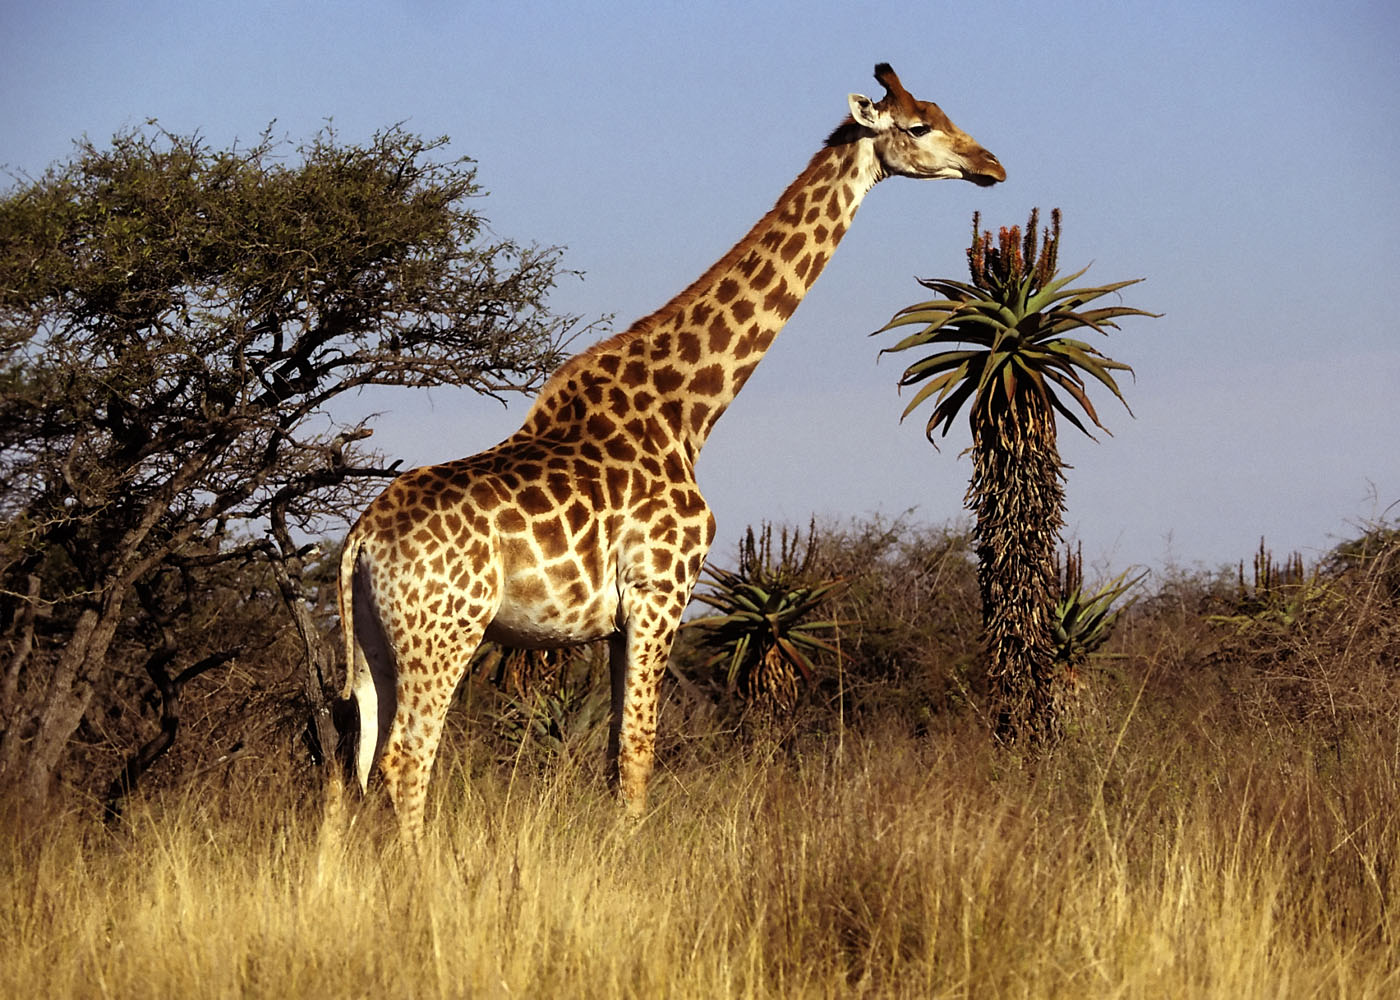 Giraffe - 07 photo